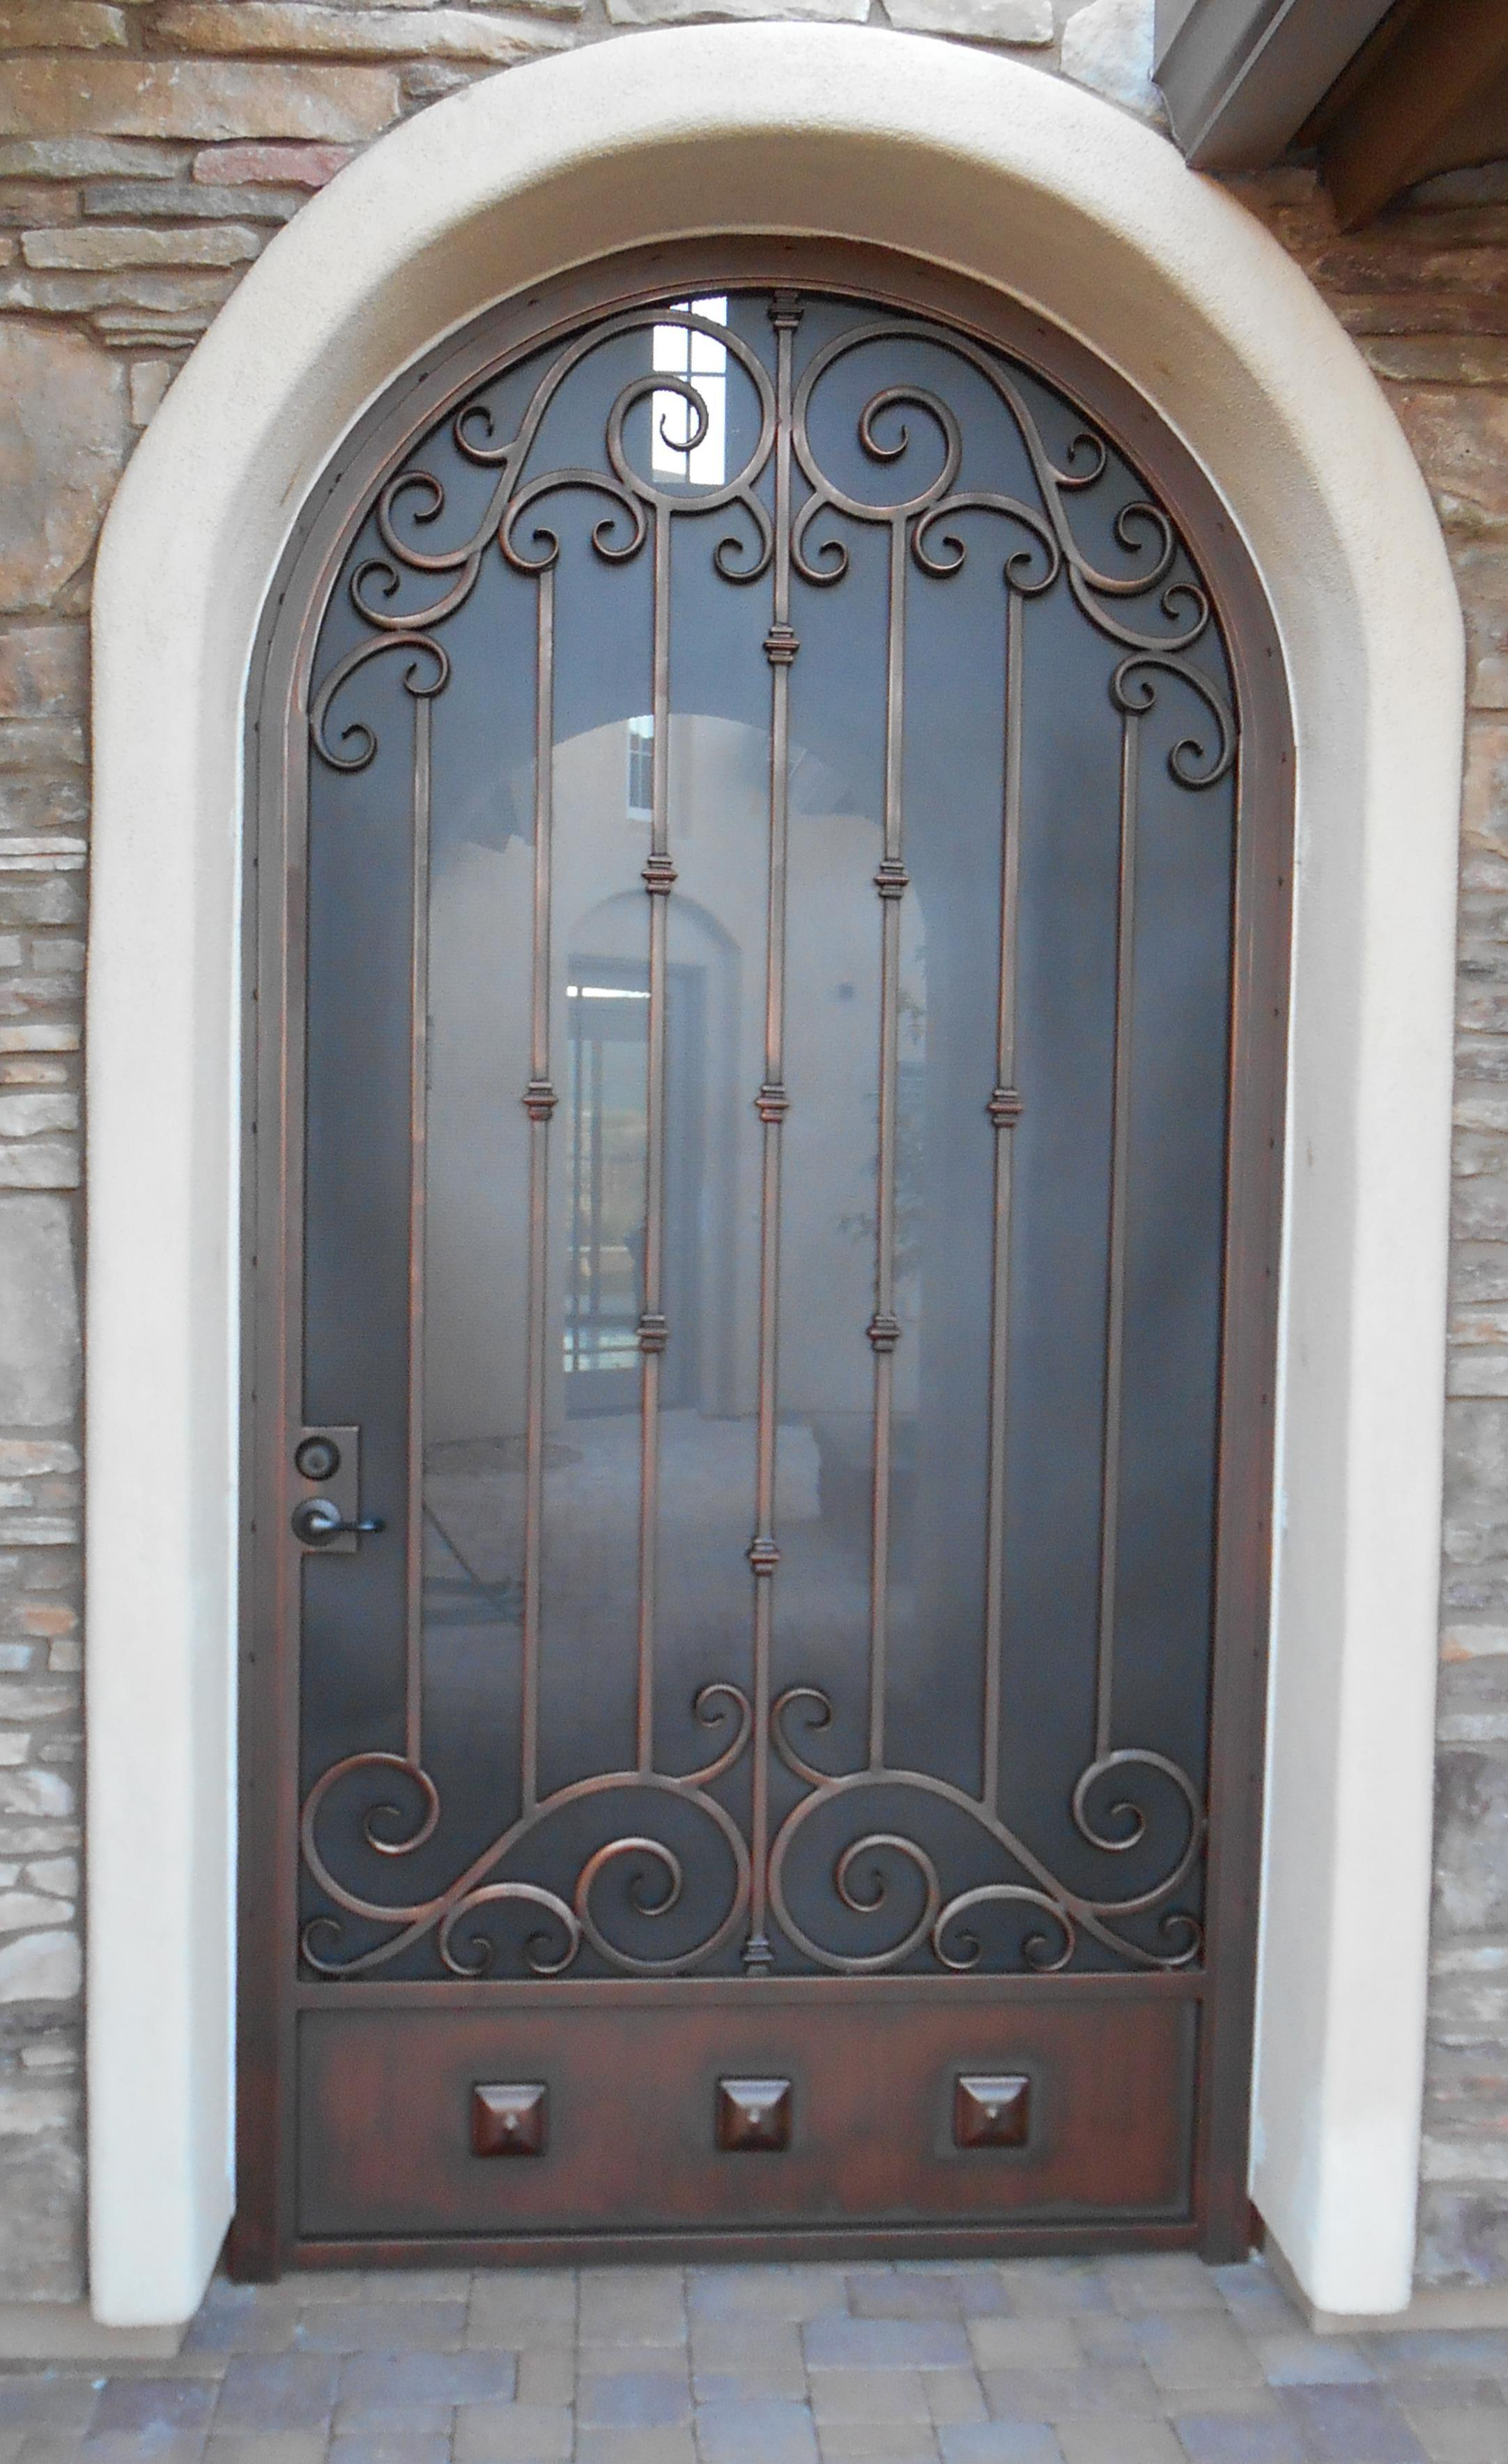 Security door with arched top ornamented with swirls 7004 E - Installed in Tucson